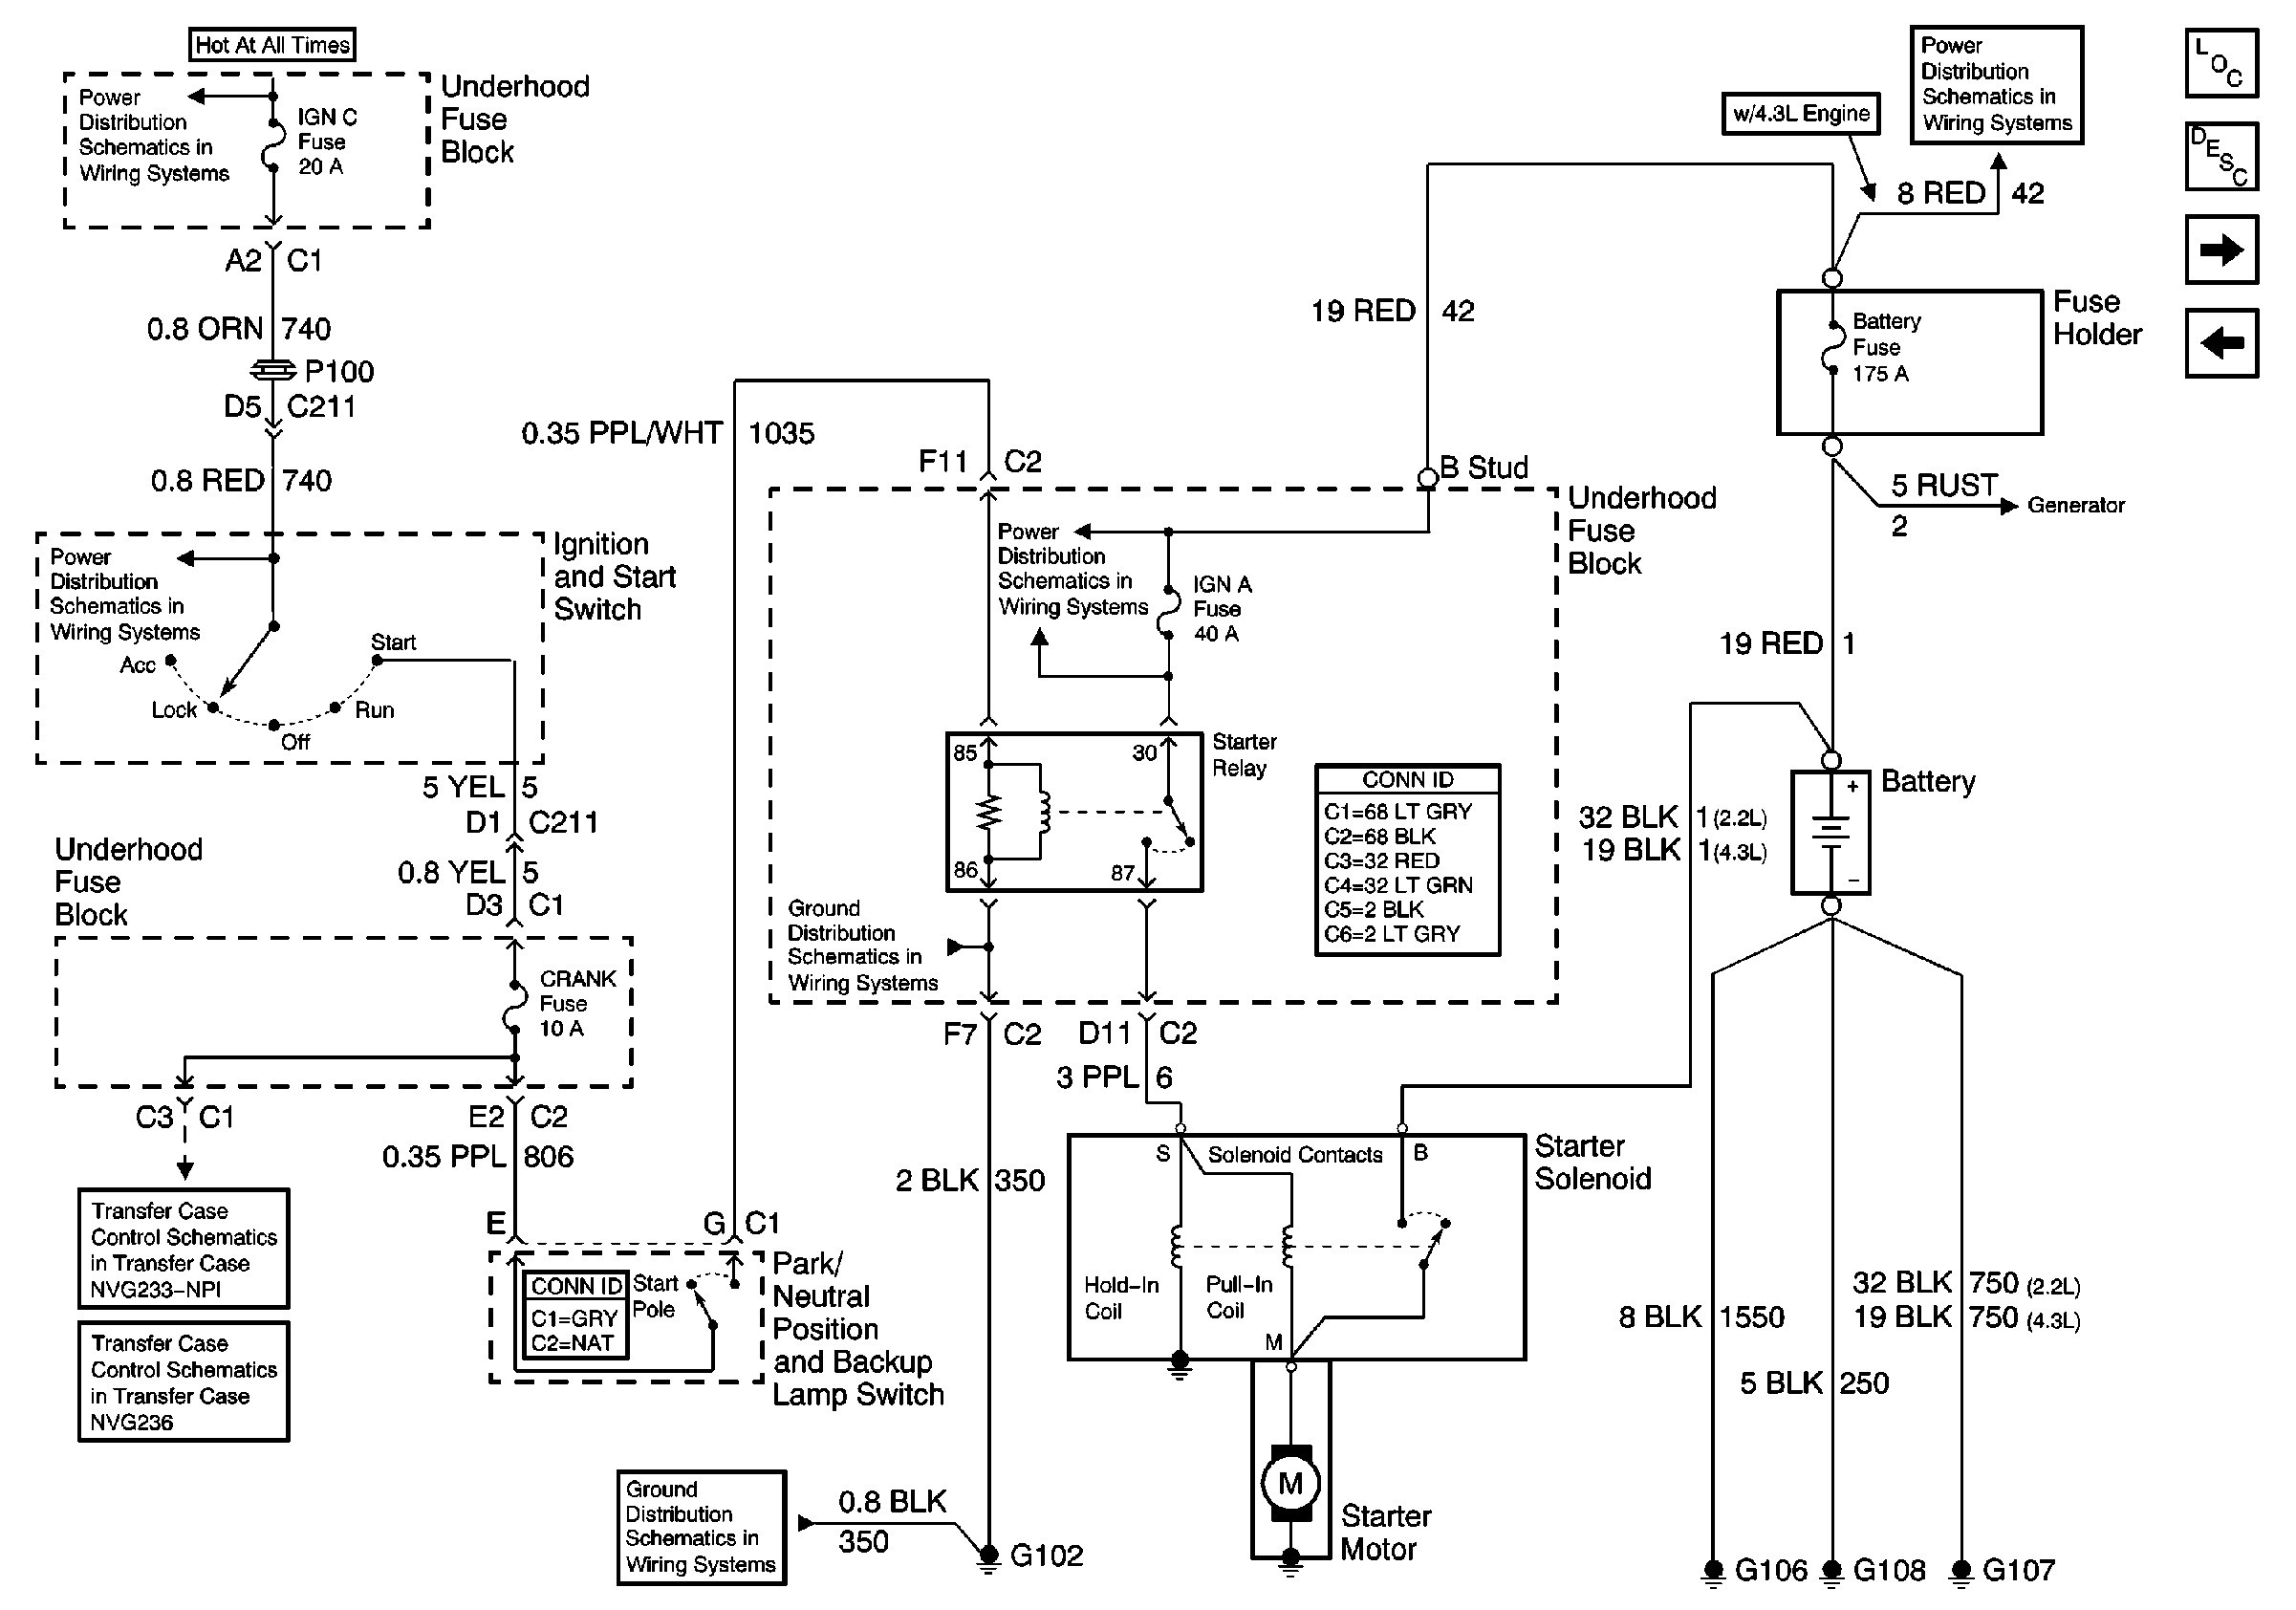 NSJY_5942] 1998 Chevy Blazer Electrical Wiring Diagram Wiring Diagram -  MATHDIAGRAM.BALSAMOSDETIGRE.ESWiring Diagram Schematics